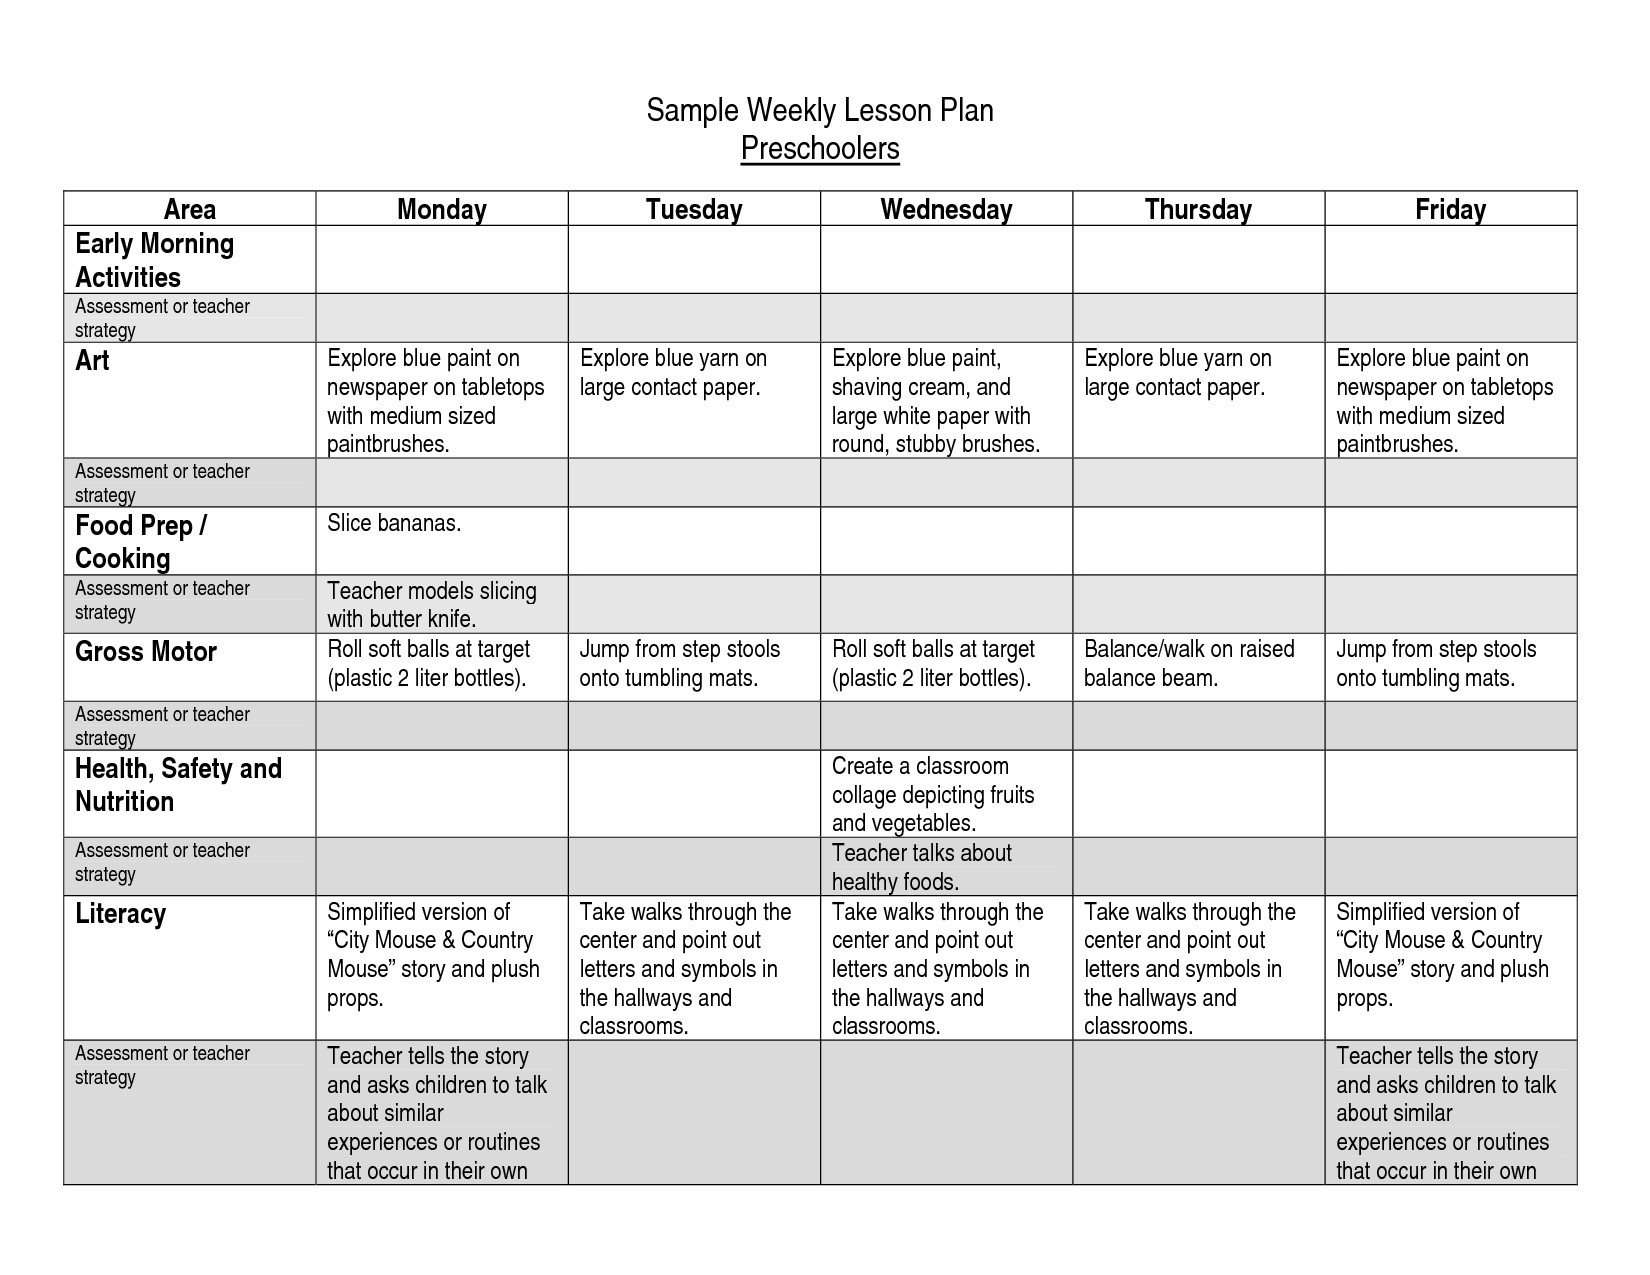 Free Toddlers Lesson Plan Templates Toddler Plans For September - Free Printable Lesson Plans For Toddlers